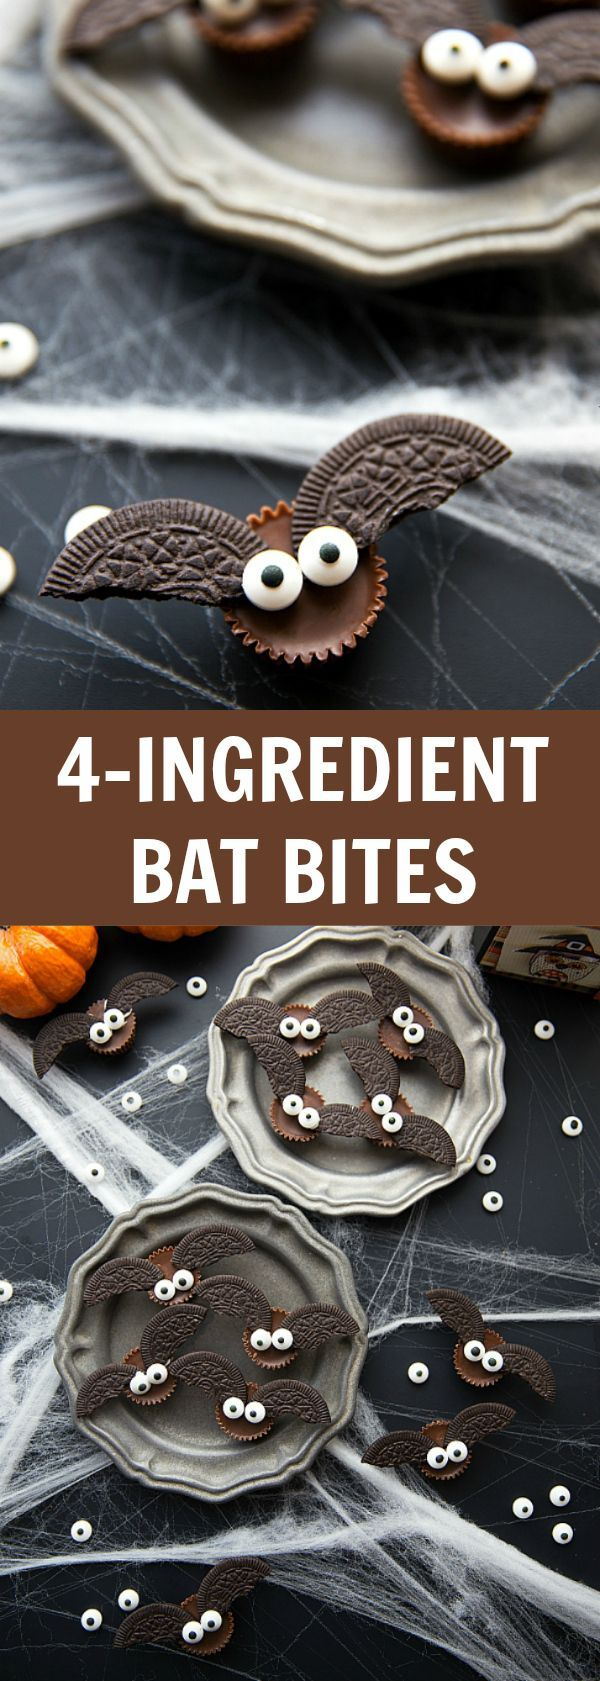 Food faith amp design thanksgiving goodies - Mini Bat Bites A Fun And Tasty Halloween Treat Recipe